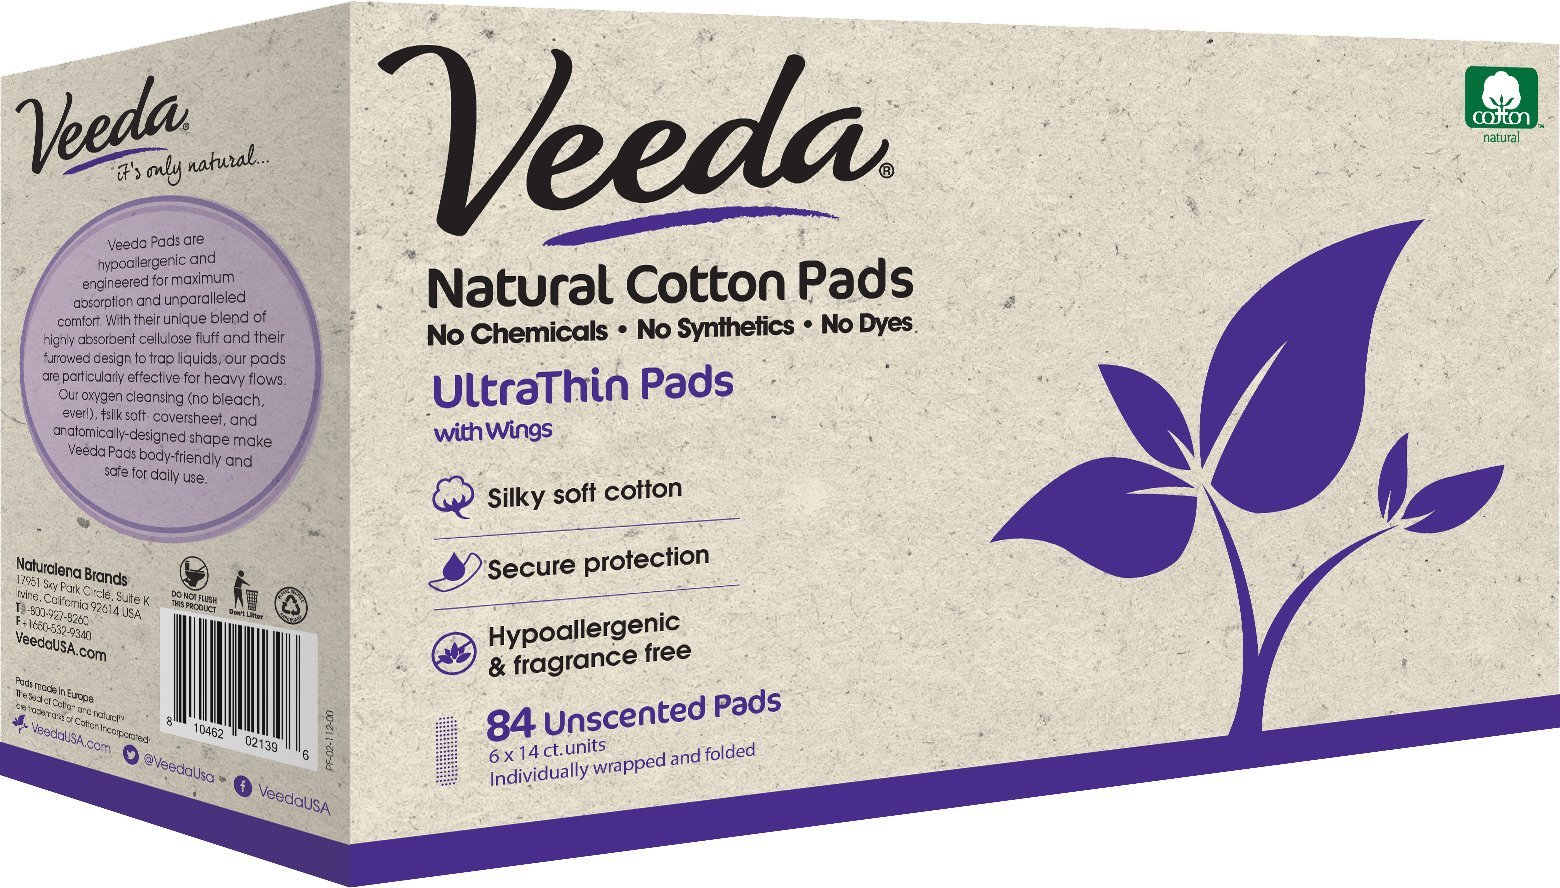 Amazon.com: Veeda Ultra Thin Pads with Wings, Natural Cotton, Hypoallergenic, Unscented 84 Count: Health & Personal Care